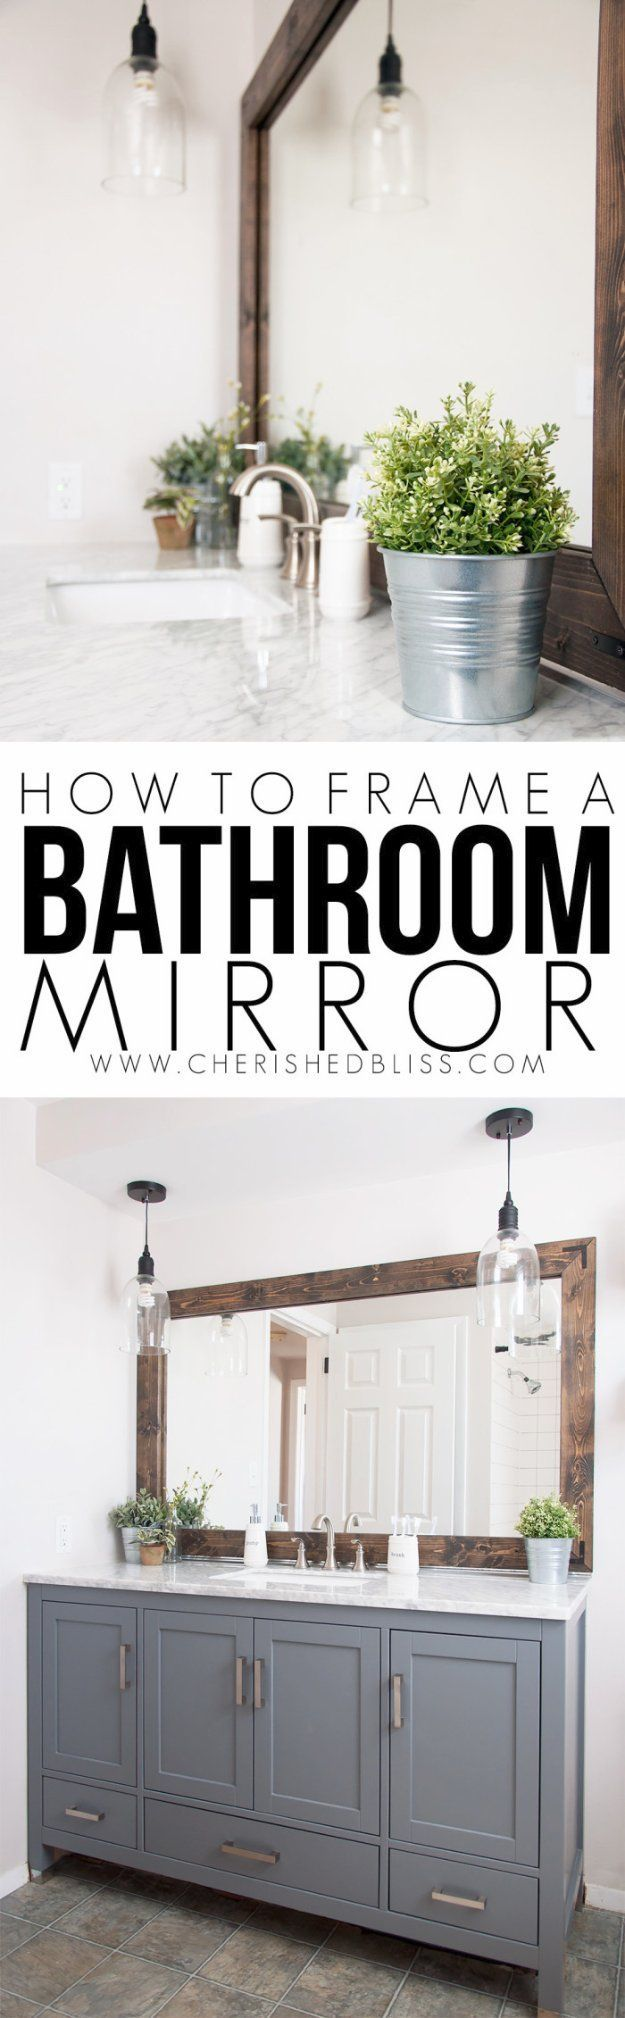 892 best images about cool bathrooms on pinterest for Do it yourself bathroom ideas